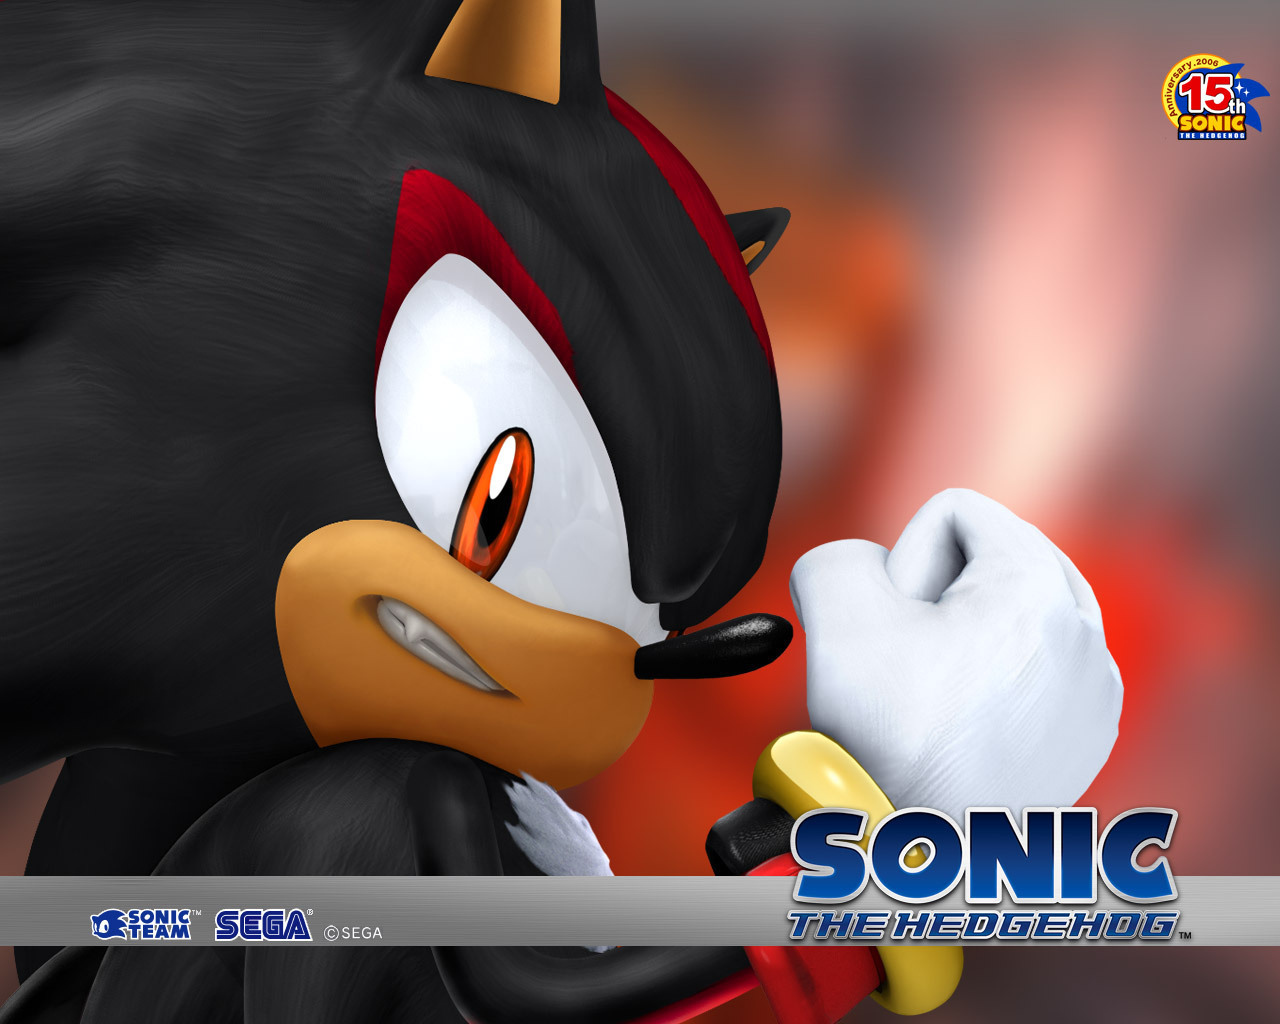 Análisis y Critica a: Sonic the Hedgehog (2006) Shadow-the-hedgehog-sonic-the-hedgehog-06-17055176-1280-1024